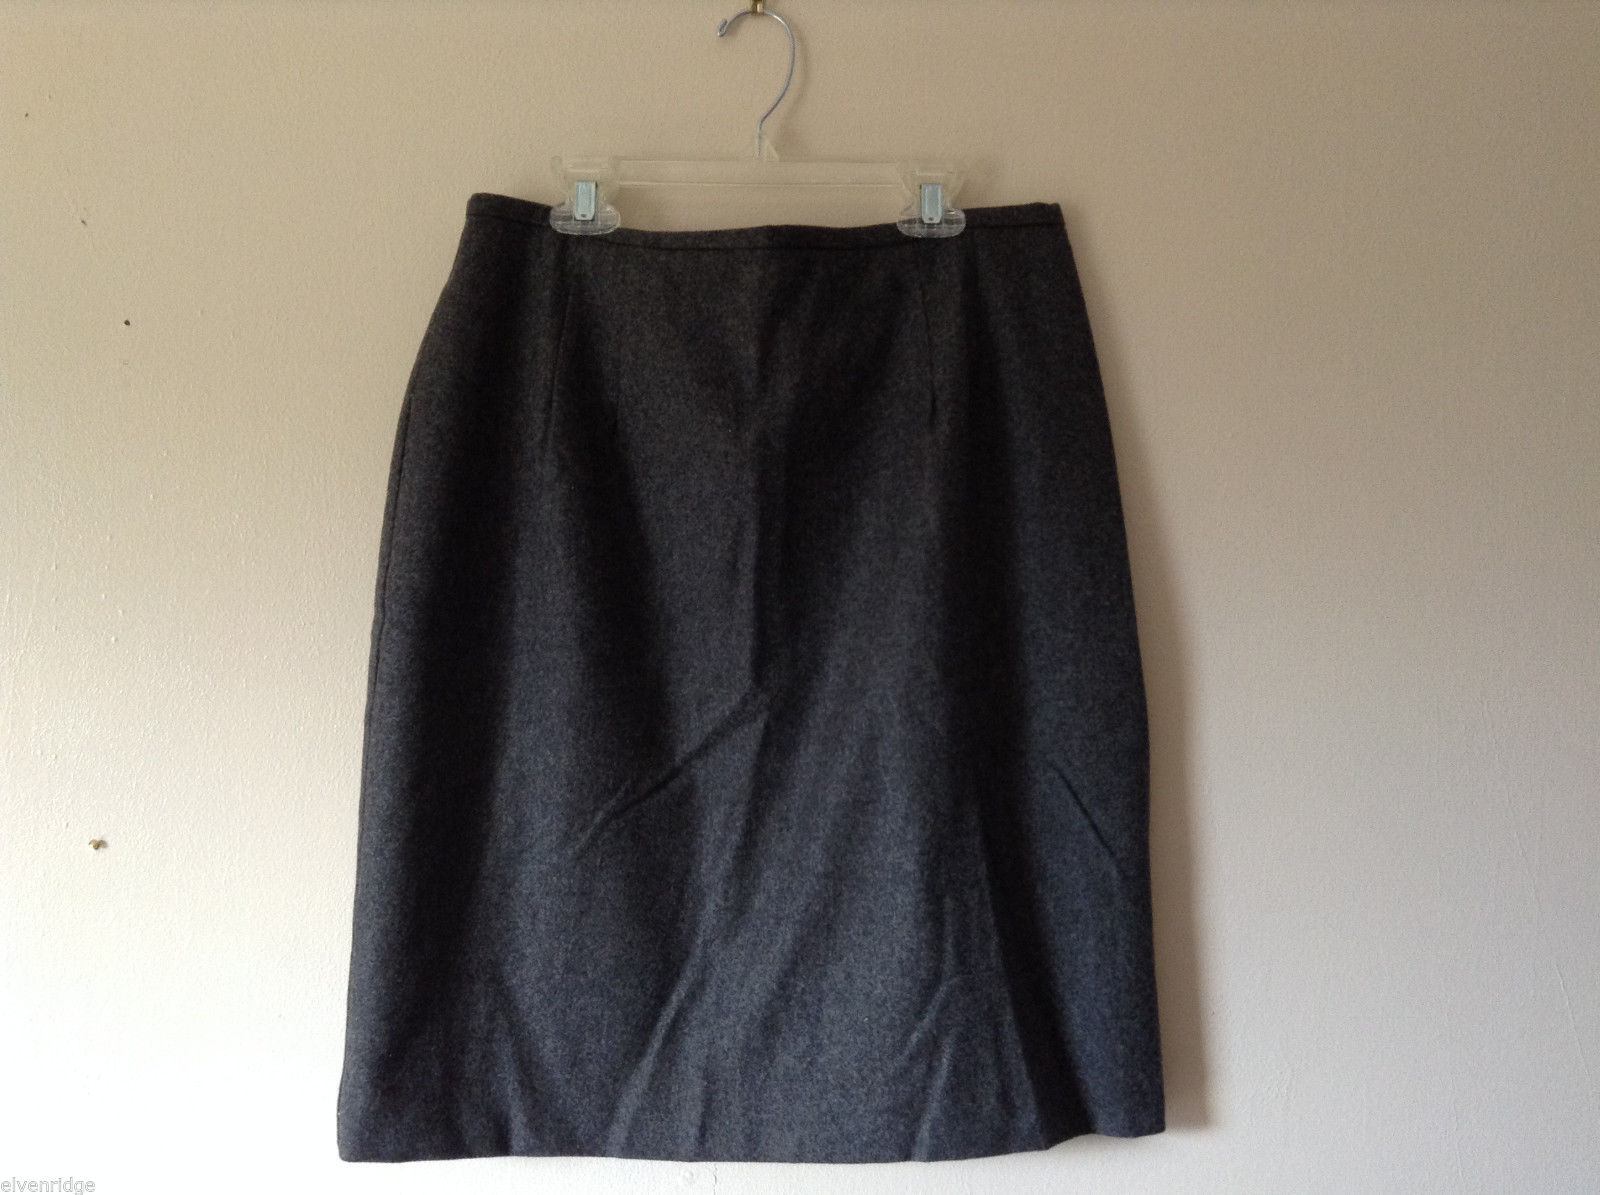 Delicia Women's Size 12 100% Wool Dark Gray Skirt w/ Back Vent Slit & Pocket